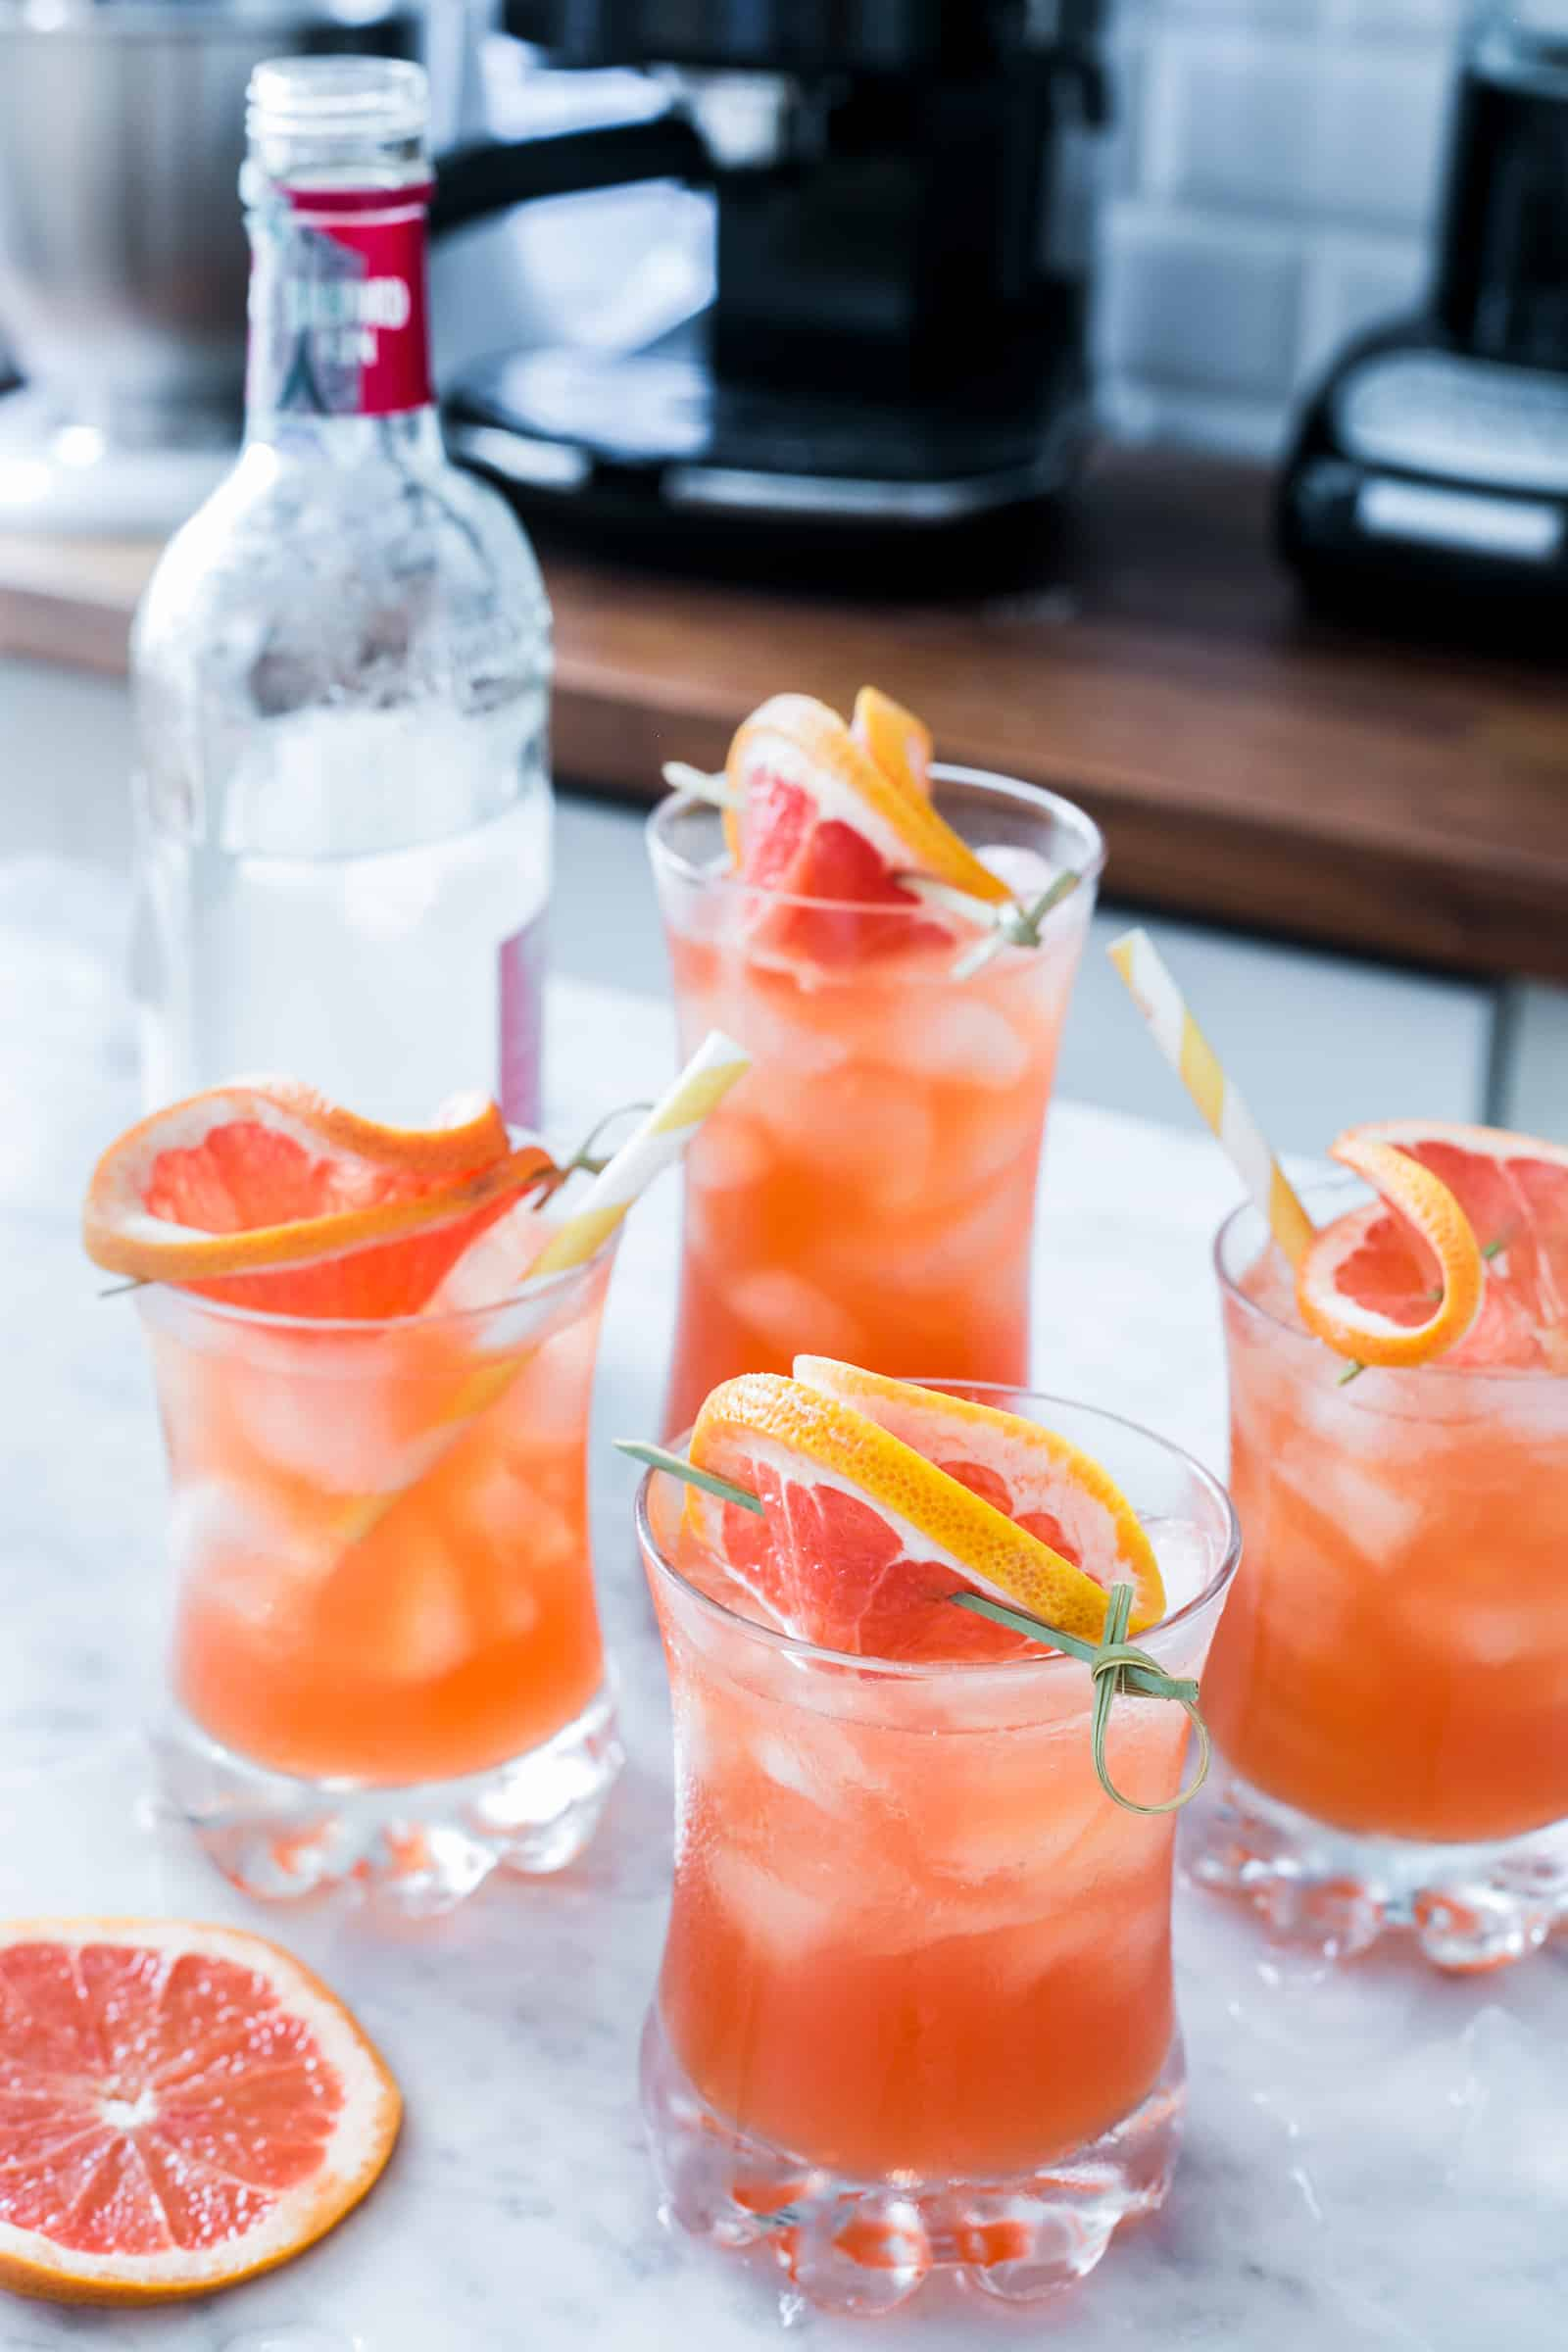 Grapefruit vodka (greyhound cocktail)